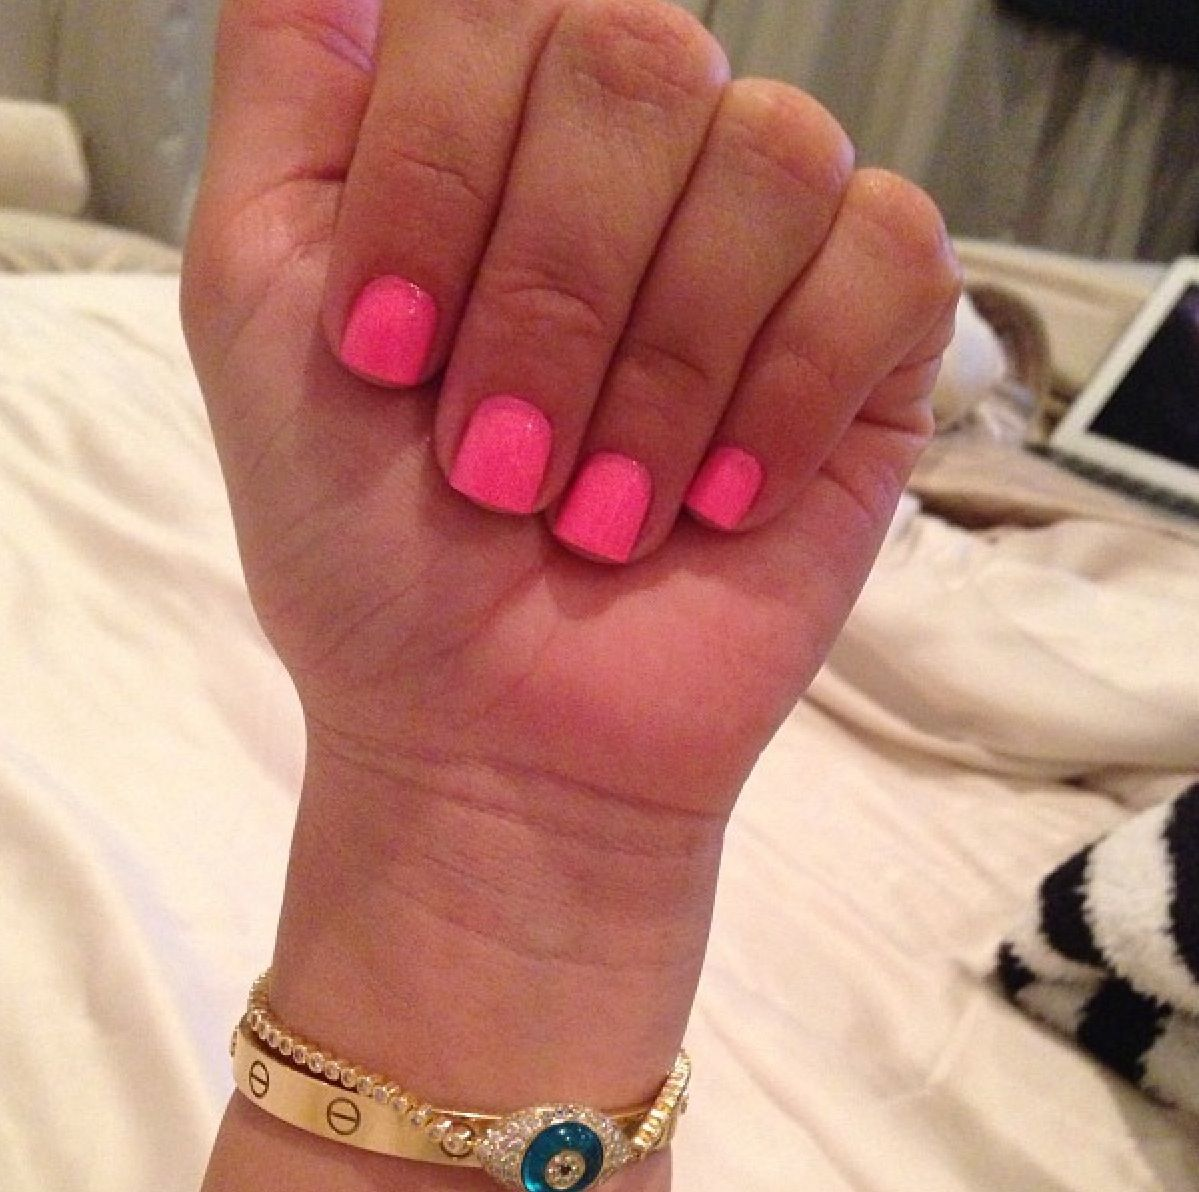 Kim Kardashian nails | Nails | Pinterest | Kardashian nails and ...